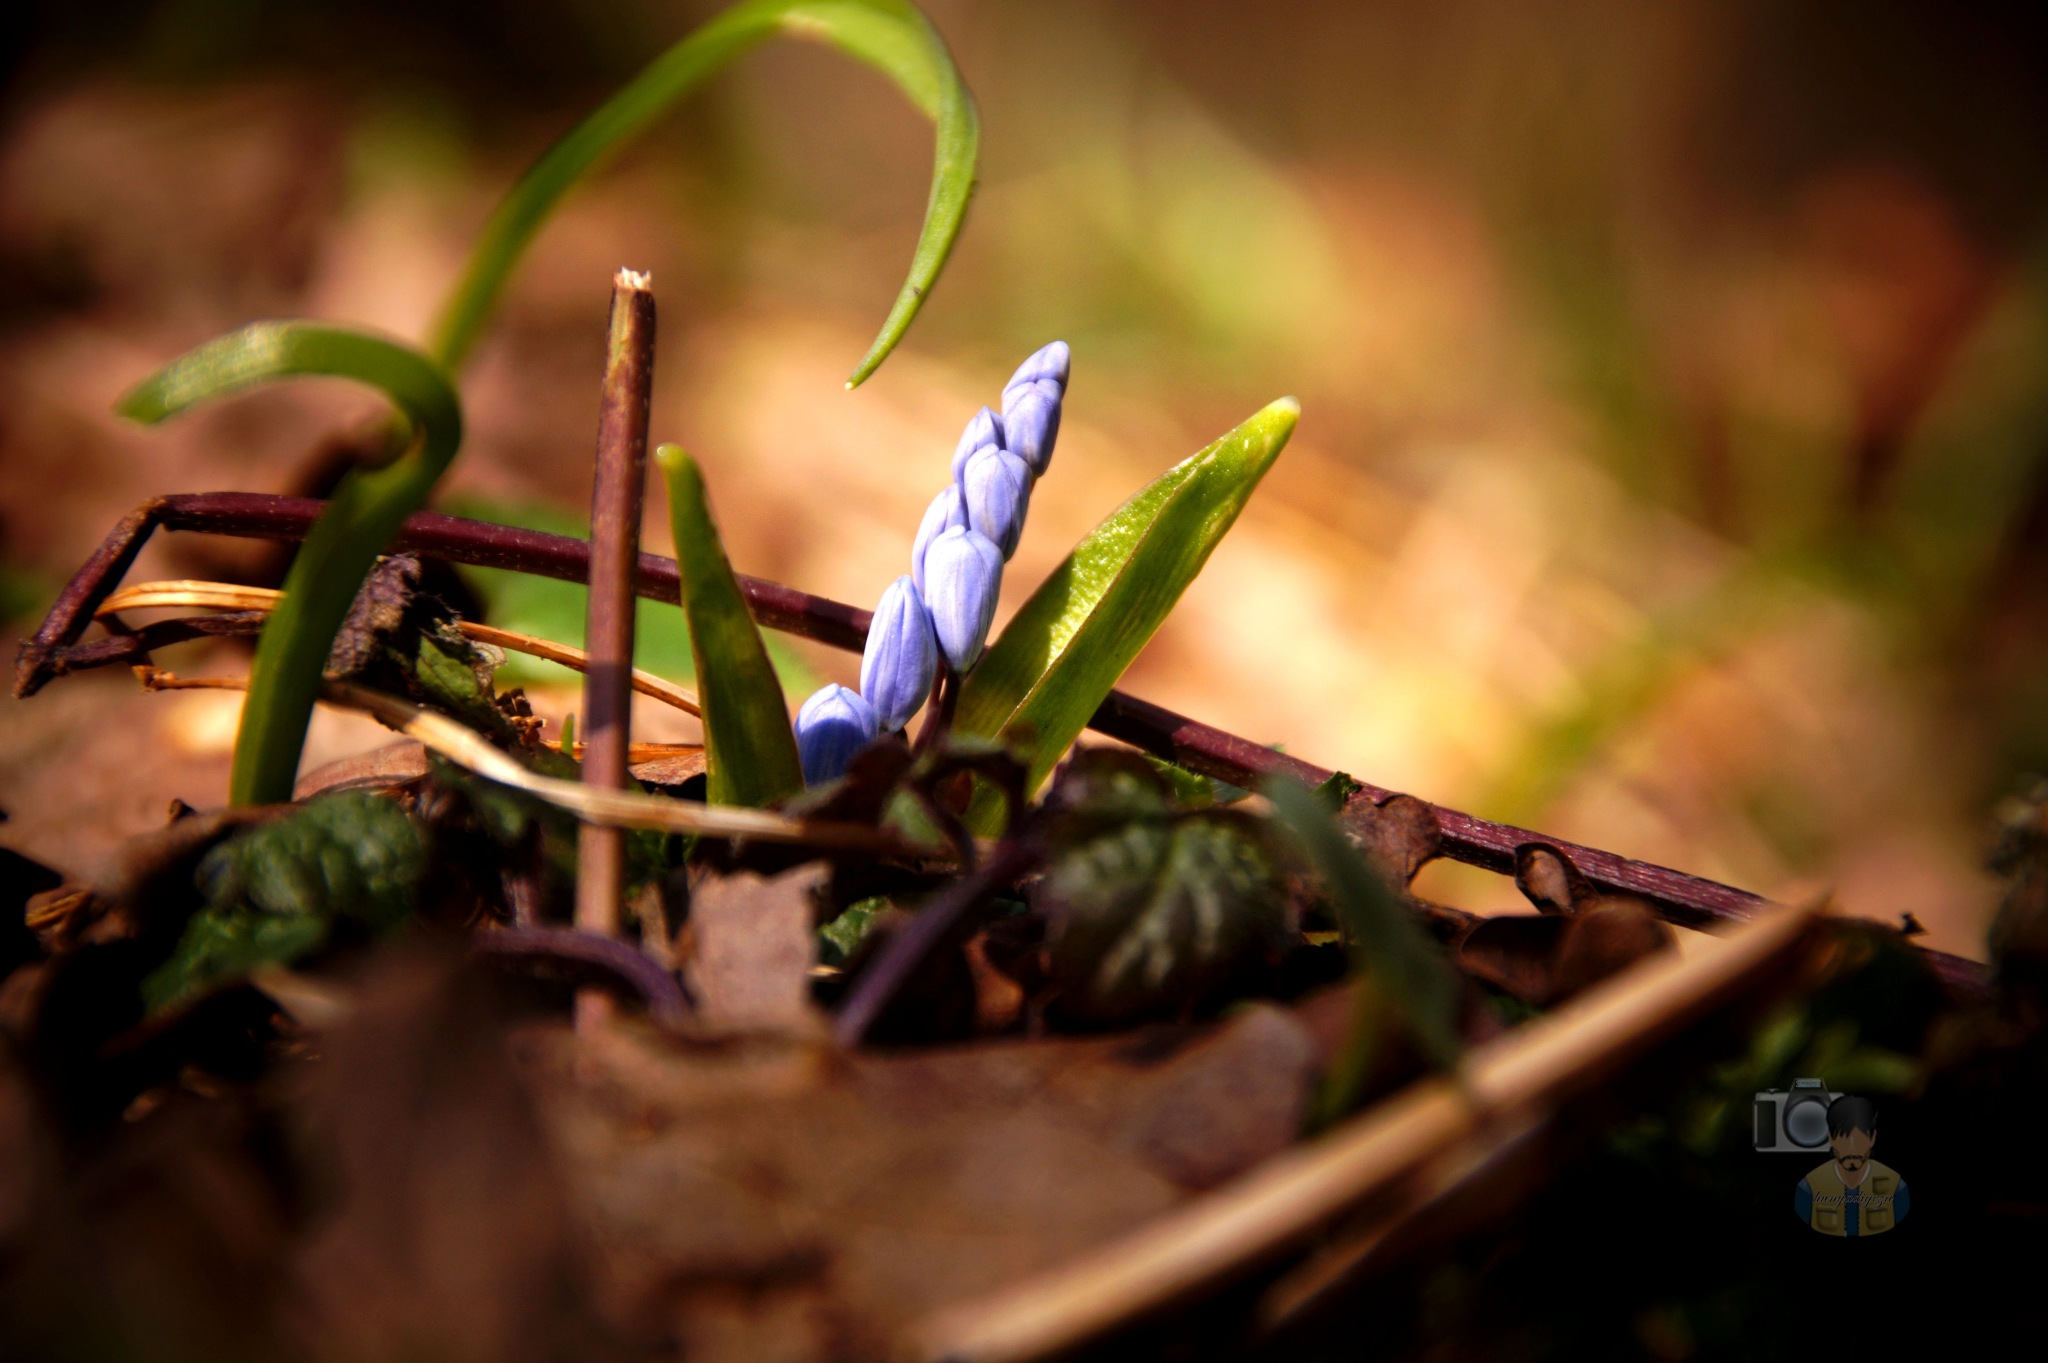 Mar.10, springtime in forest #1 by hunyadigeza